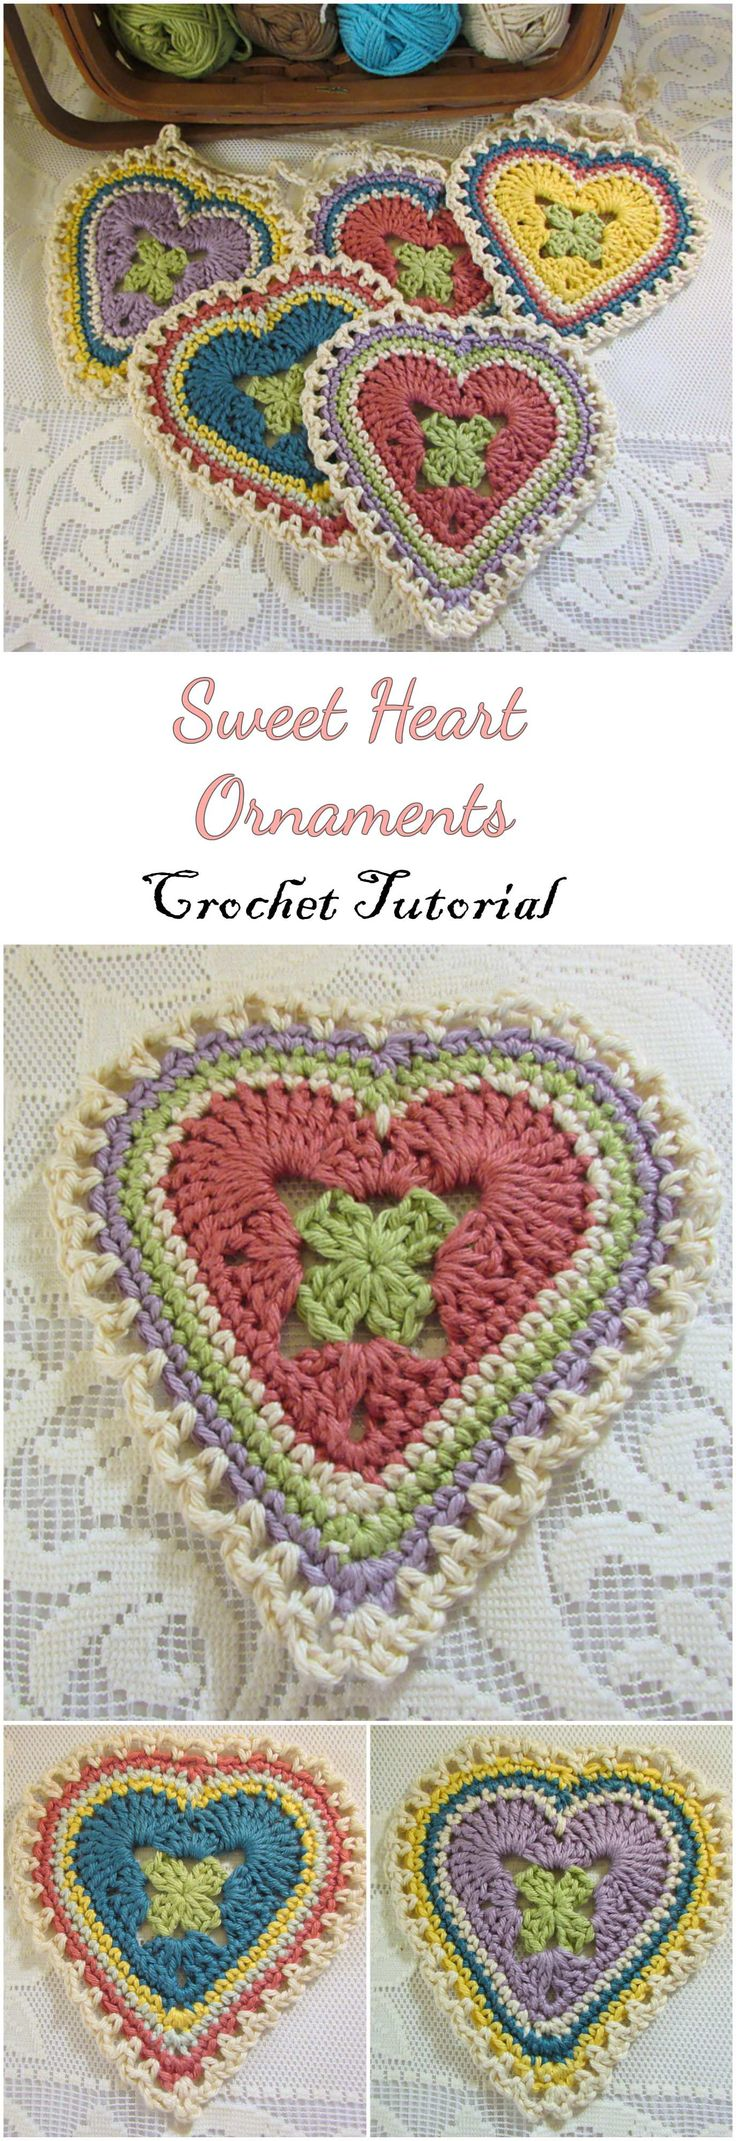 Crochet Sweet hearts